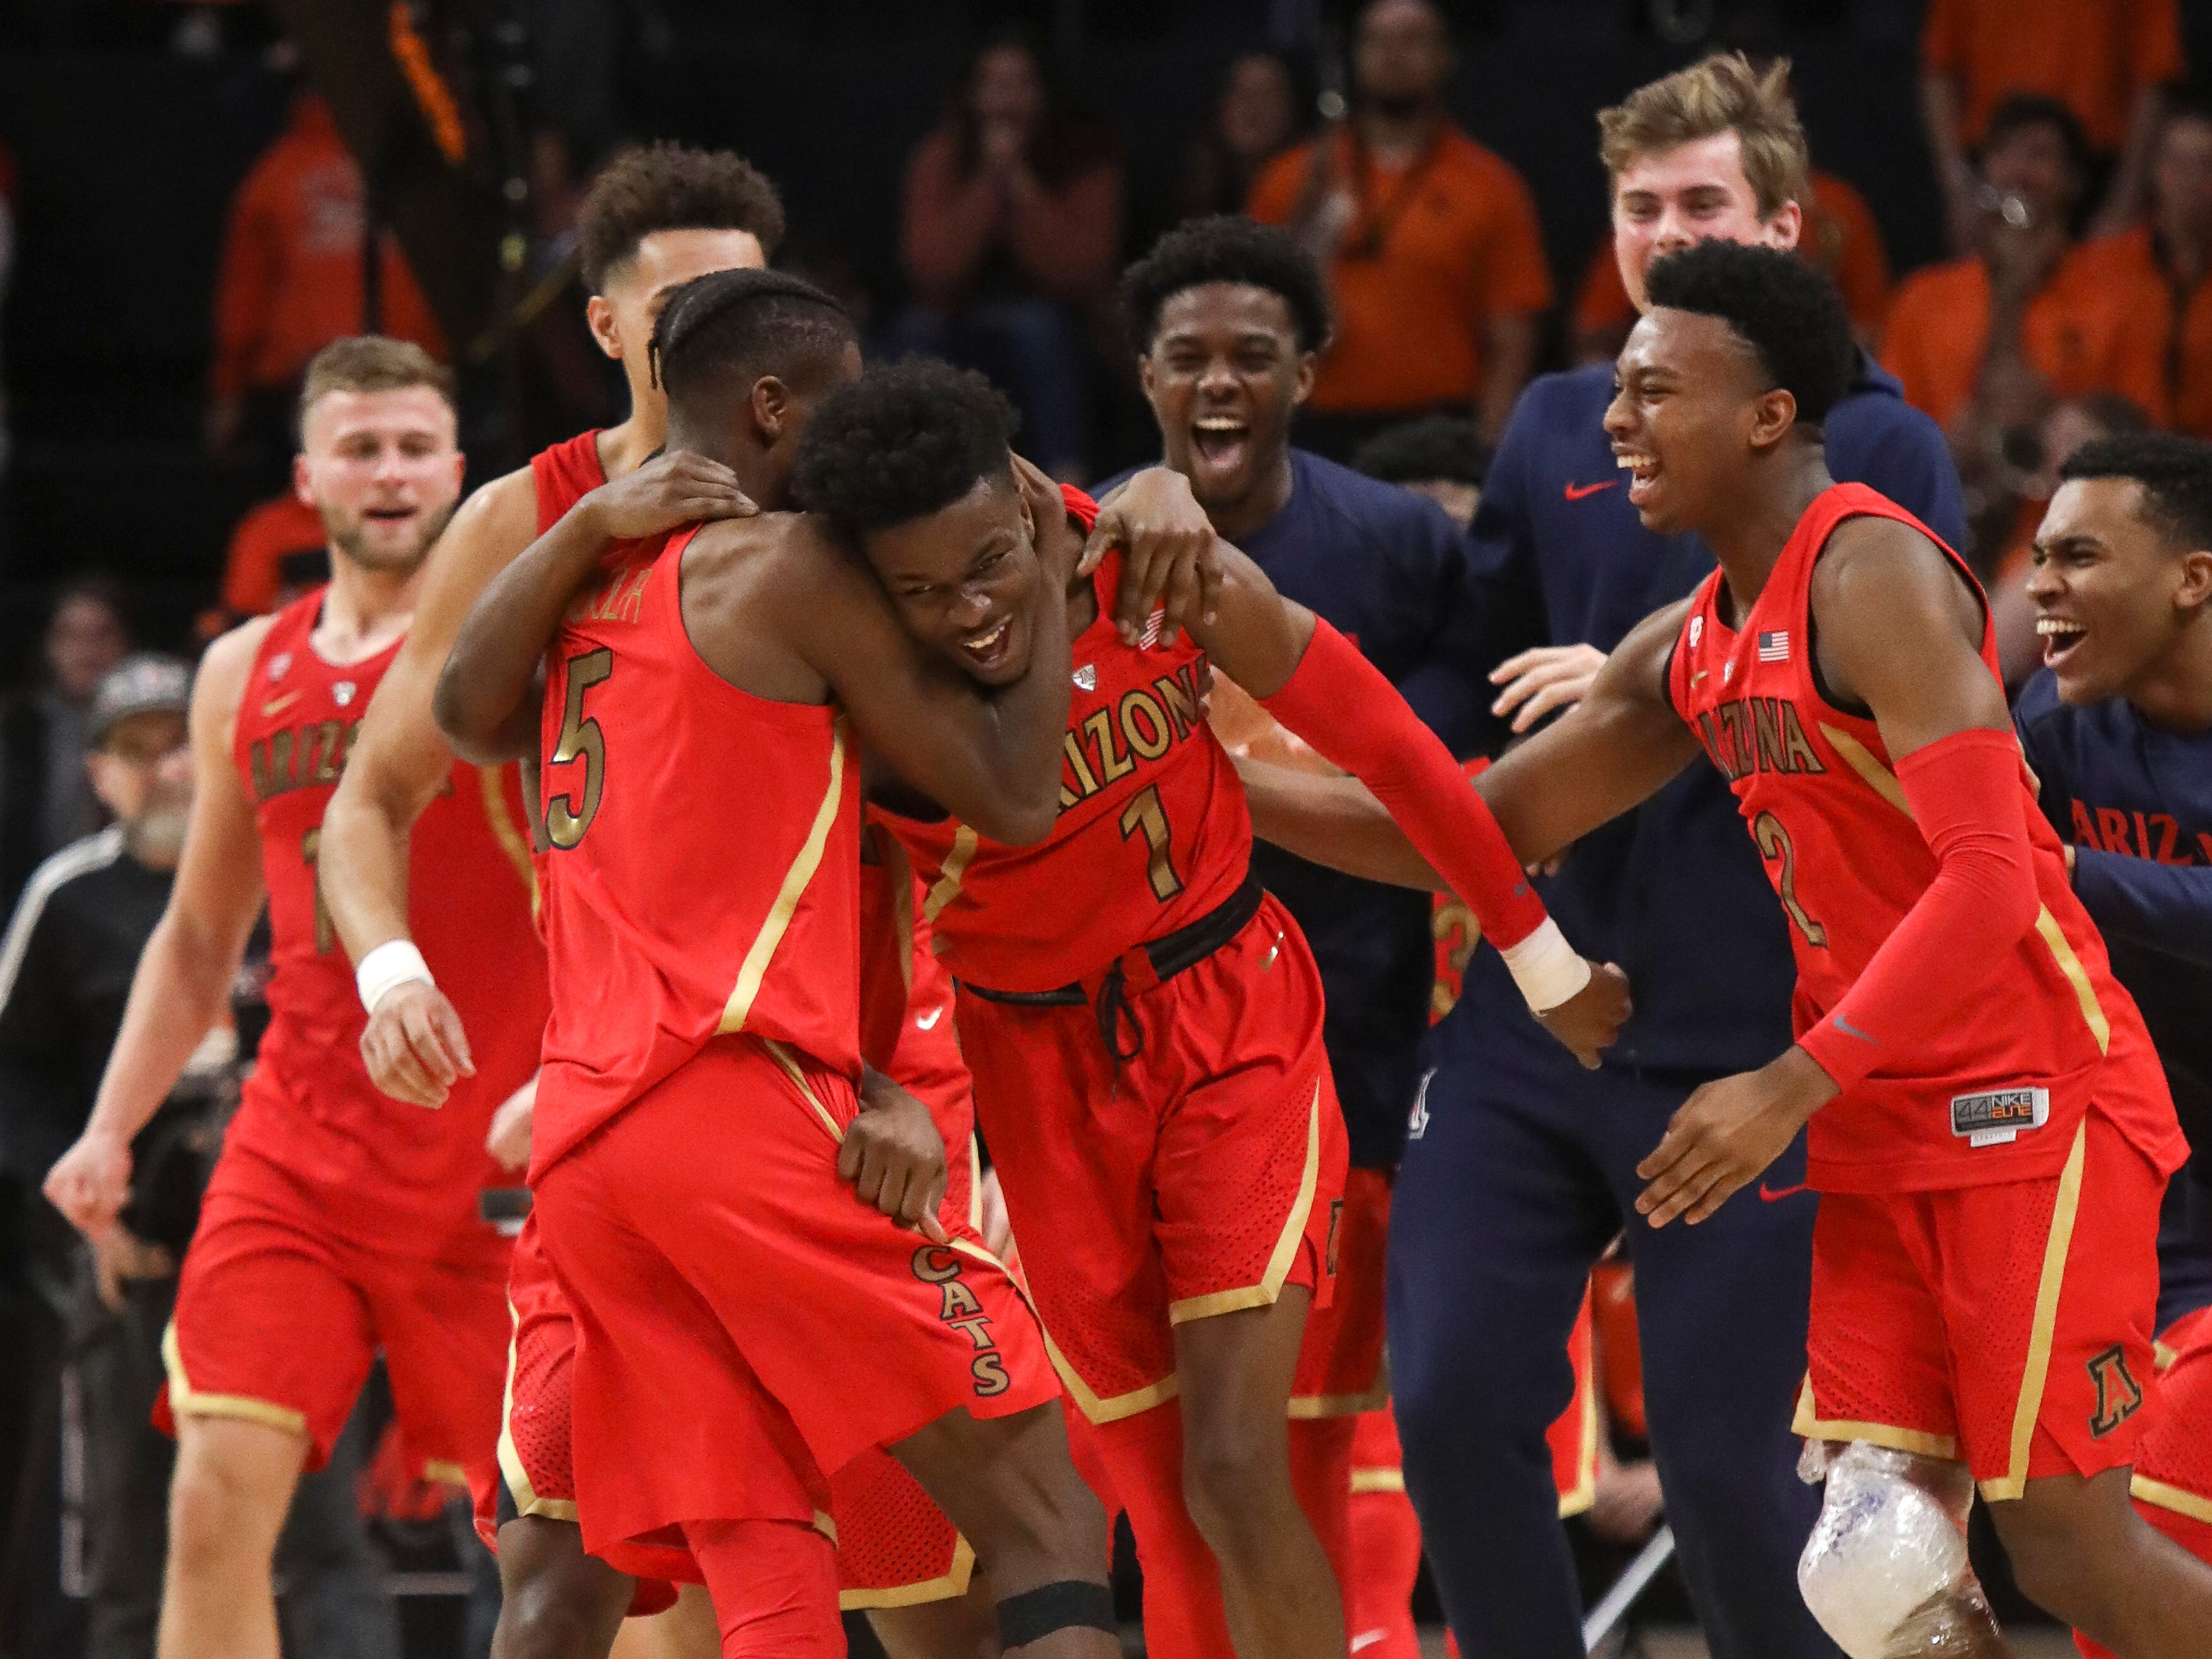 Arizona's Brandon Randolph, left, and Brandon Williams, right, celebrate with Devonaire Doutrive, center, after Doutrive scored in the final second of the game, securing the win over Oregon State during an NCAA college basketball game in Corvallis, Ore., Thursday, Feb. 28, 2019. Arizona won 74-72.